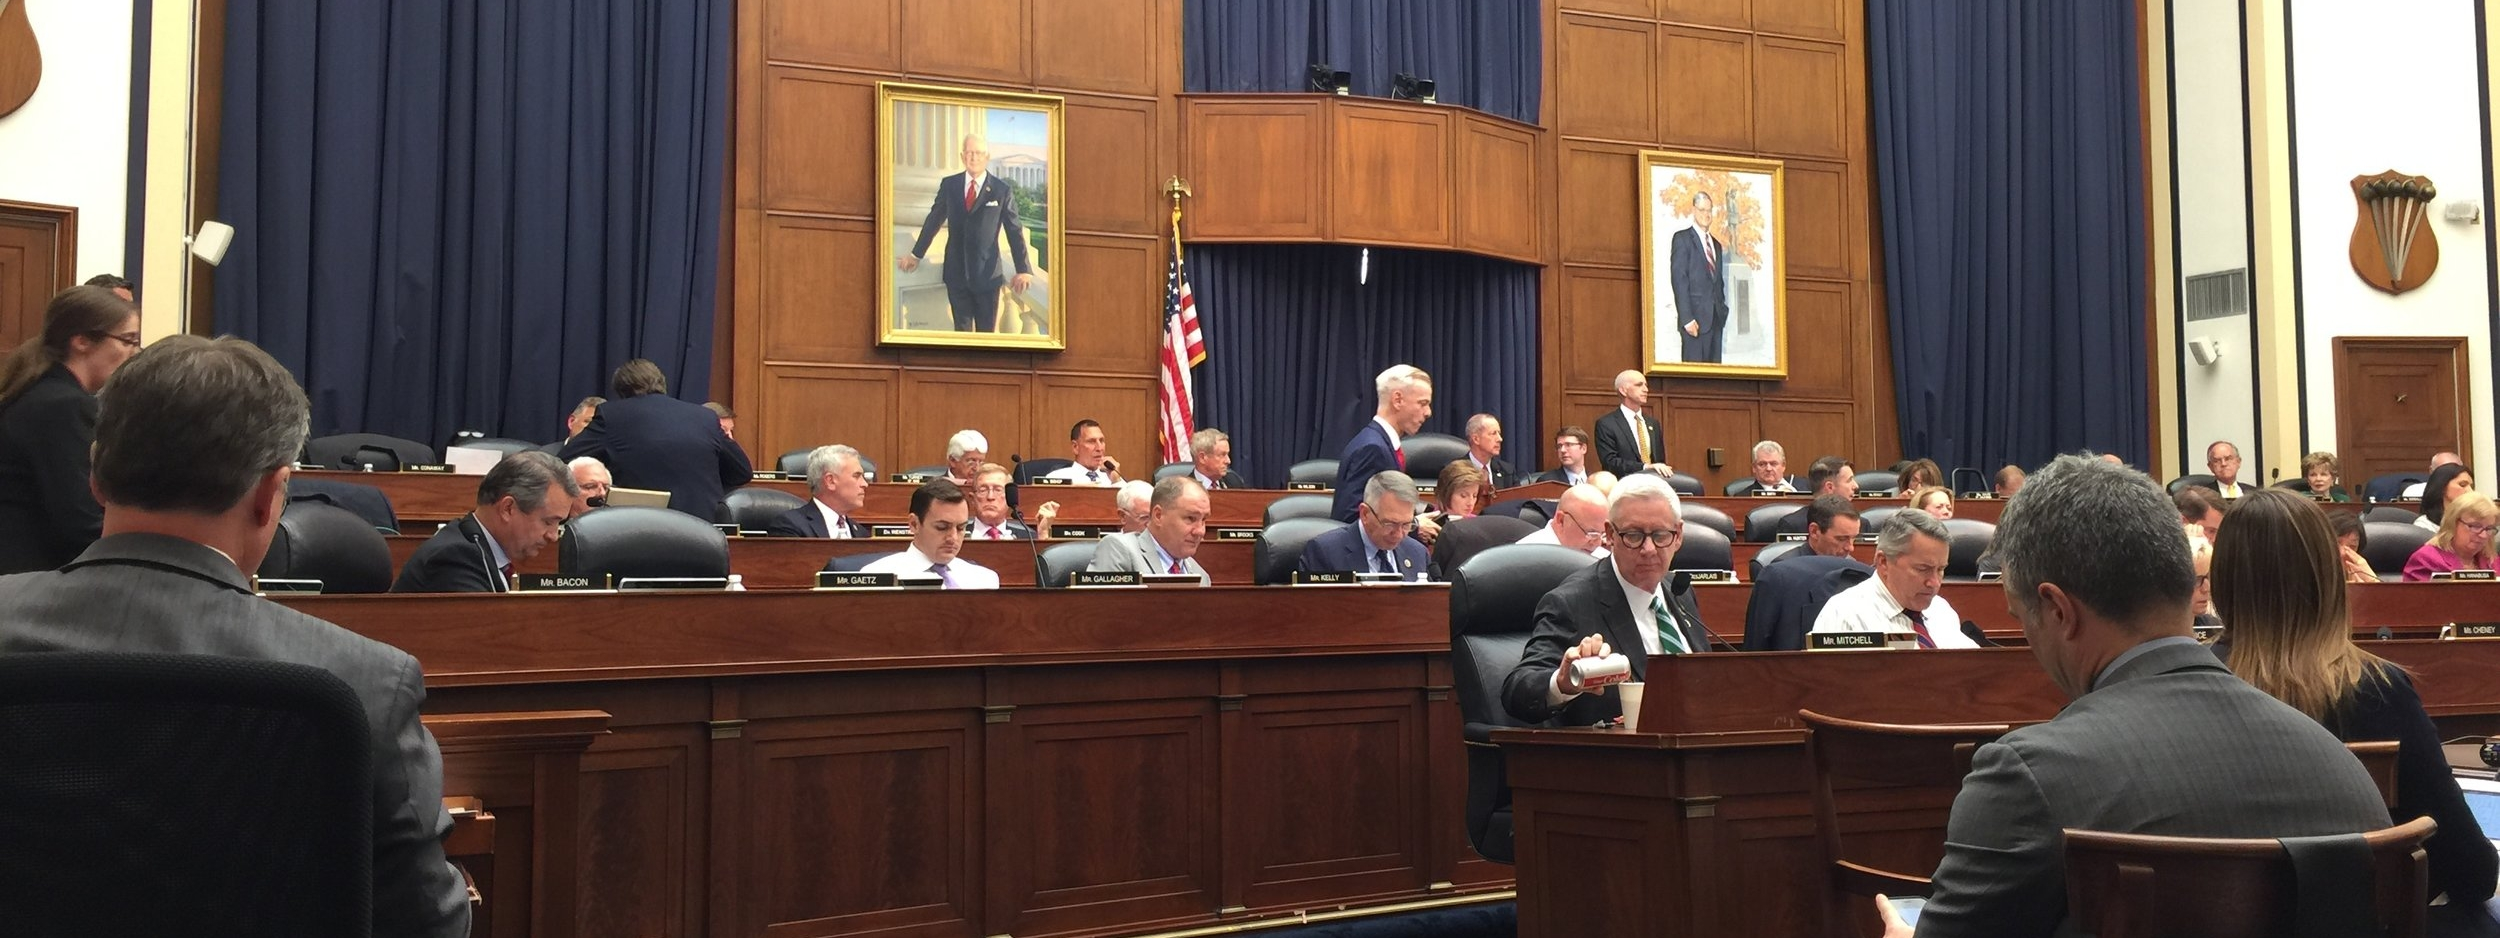 """CoAspire personnel attended the open HASC Markup session on May 9, 2018 where JAGM-F and other issues were debated and voted on. JAGM-F Missile amendments (an additional $10M total authorized for Navy and Marine Corps)were voted on """"En Bloc""""and the vote was bi-partisan and unanimous. (CoAspire Photo)"""